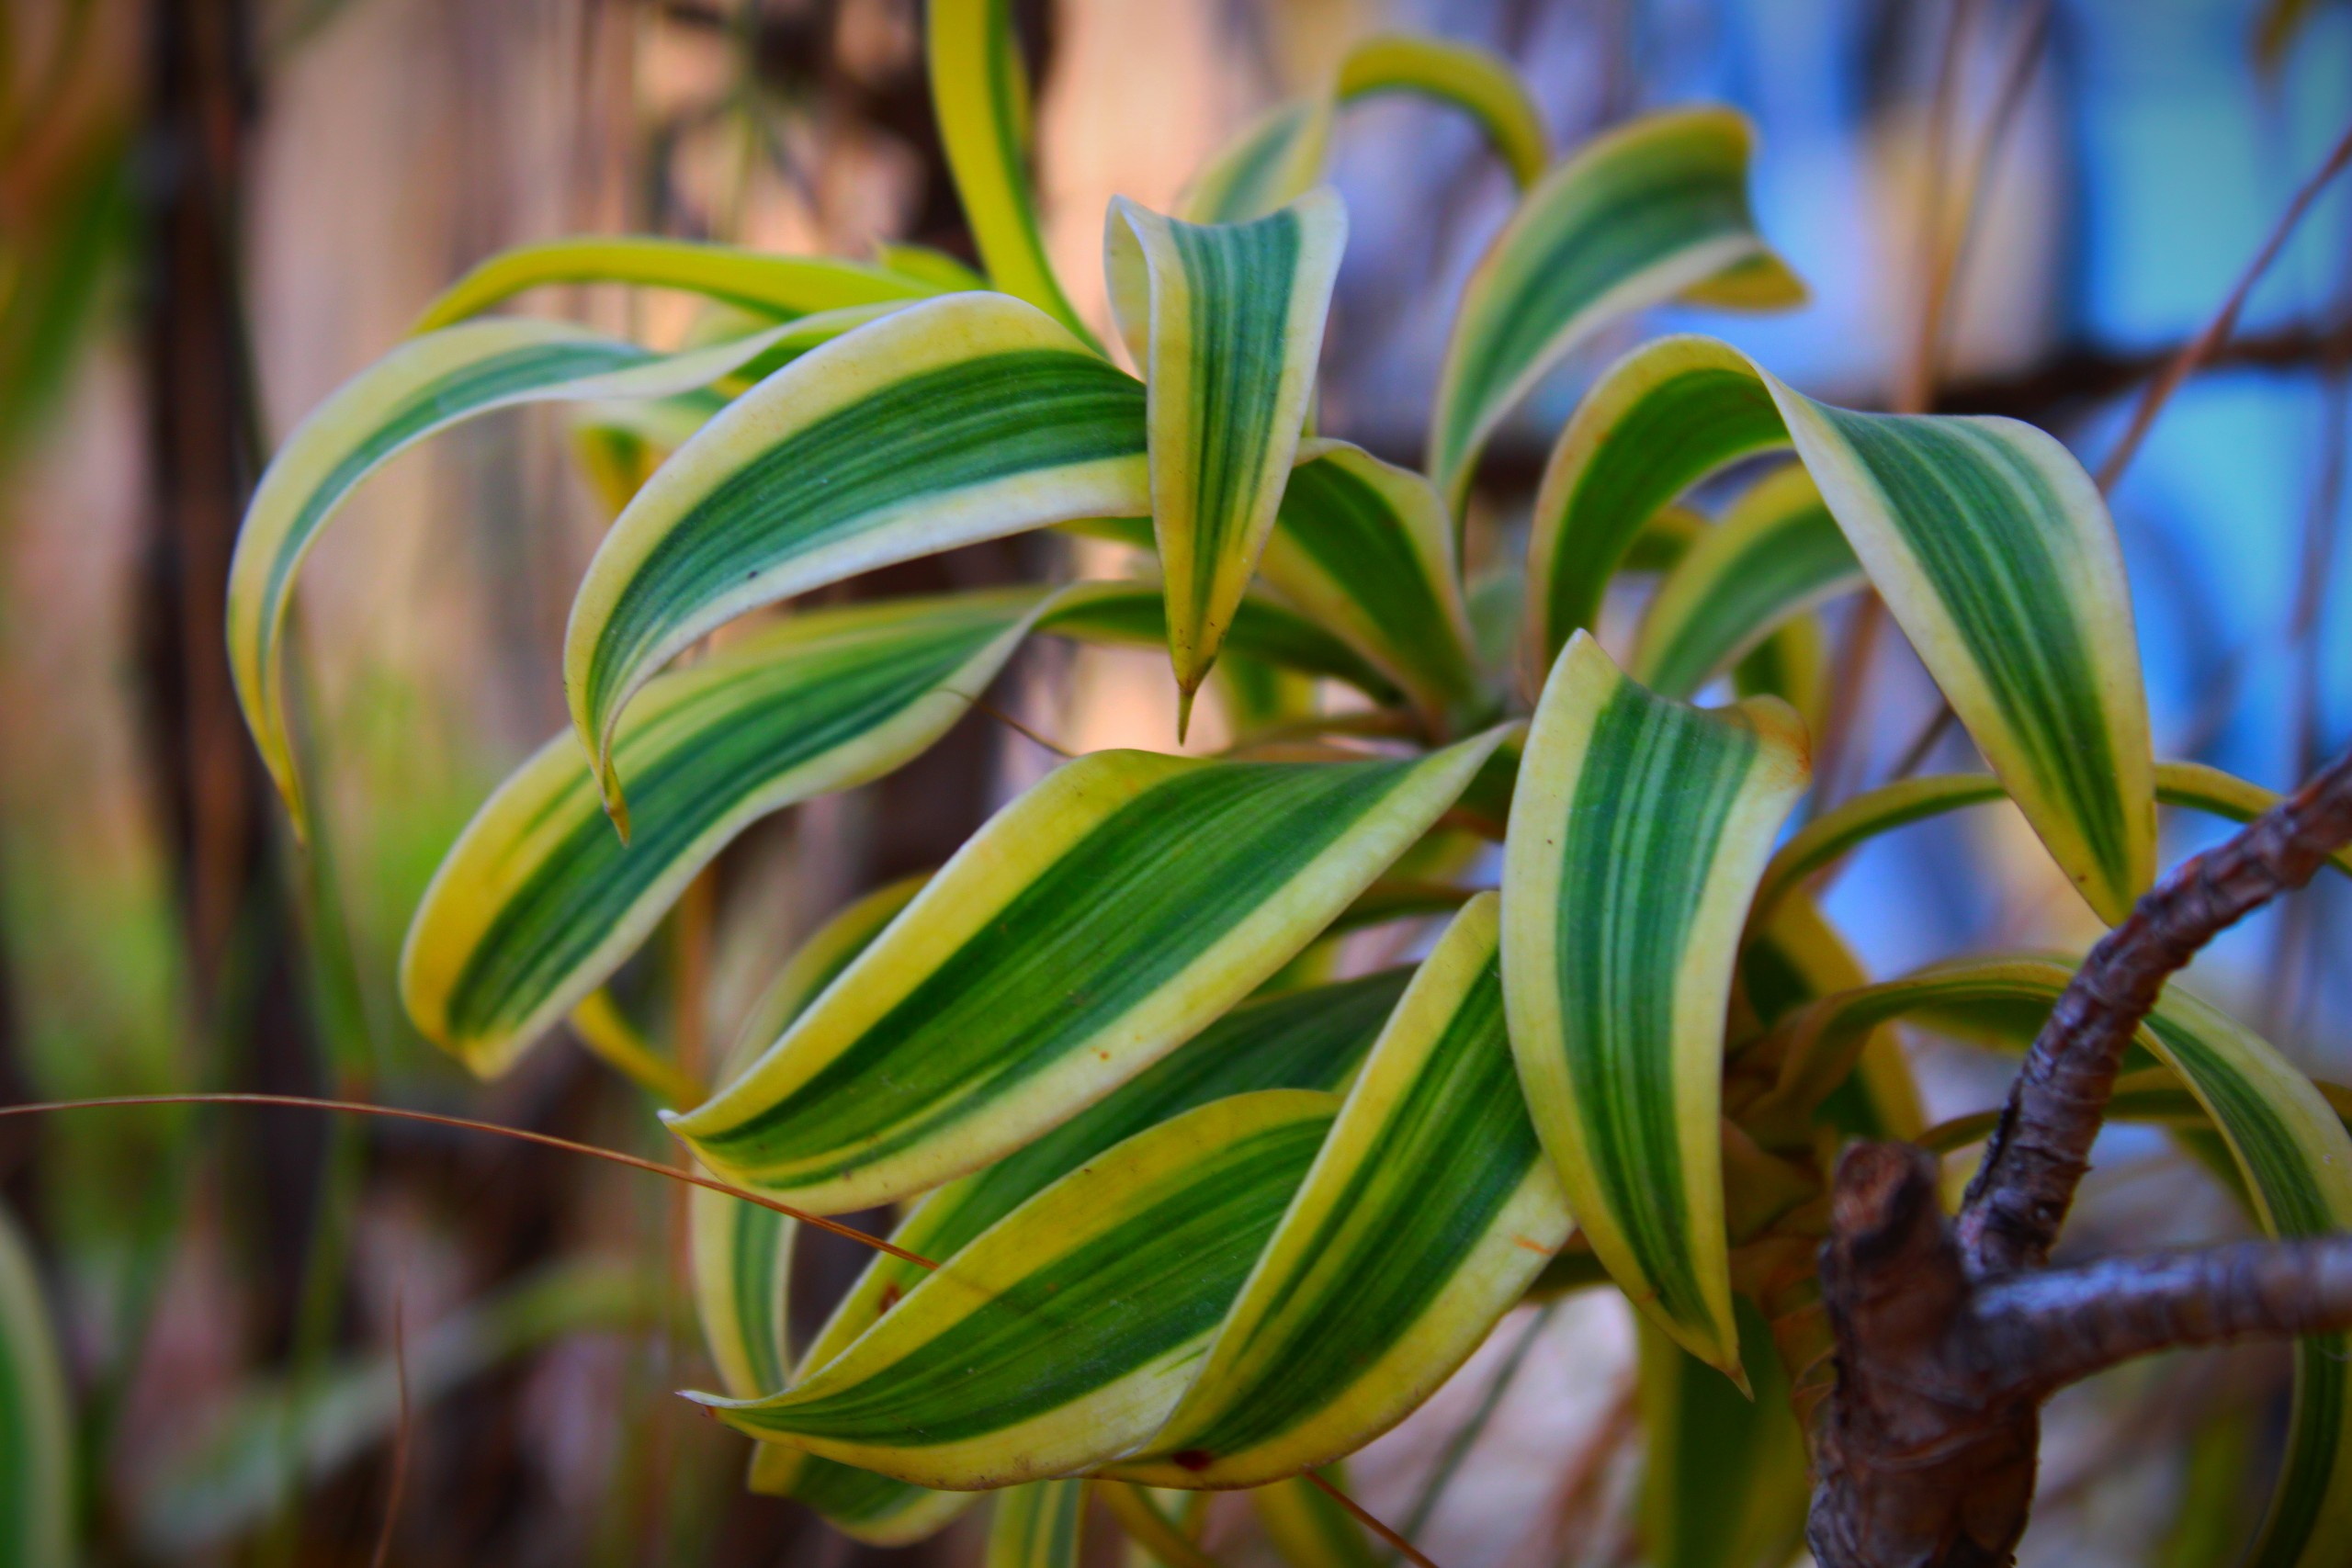 Plant leaves in a garden